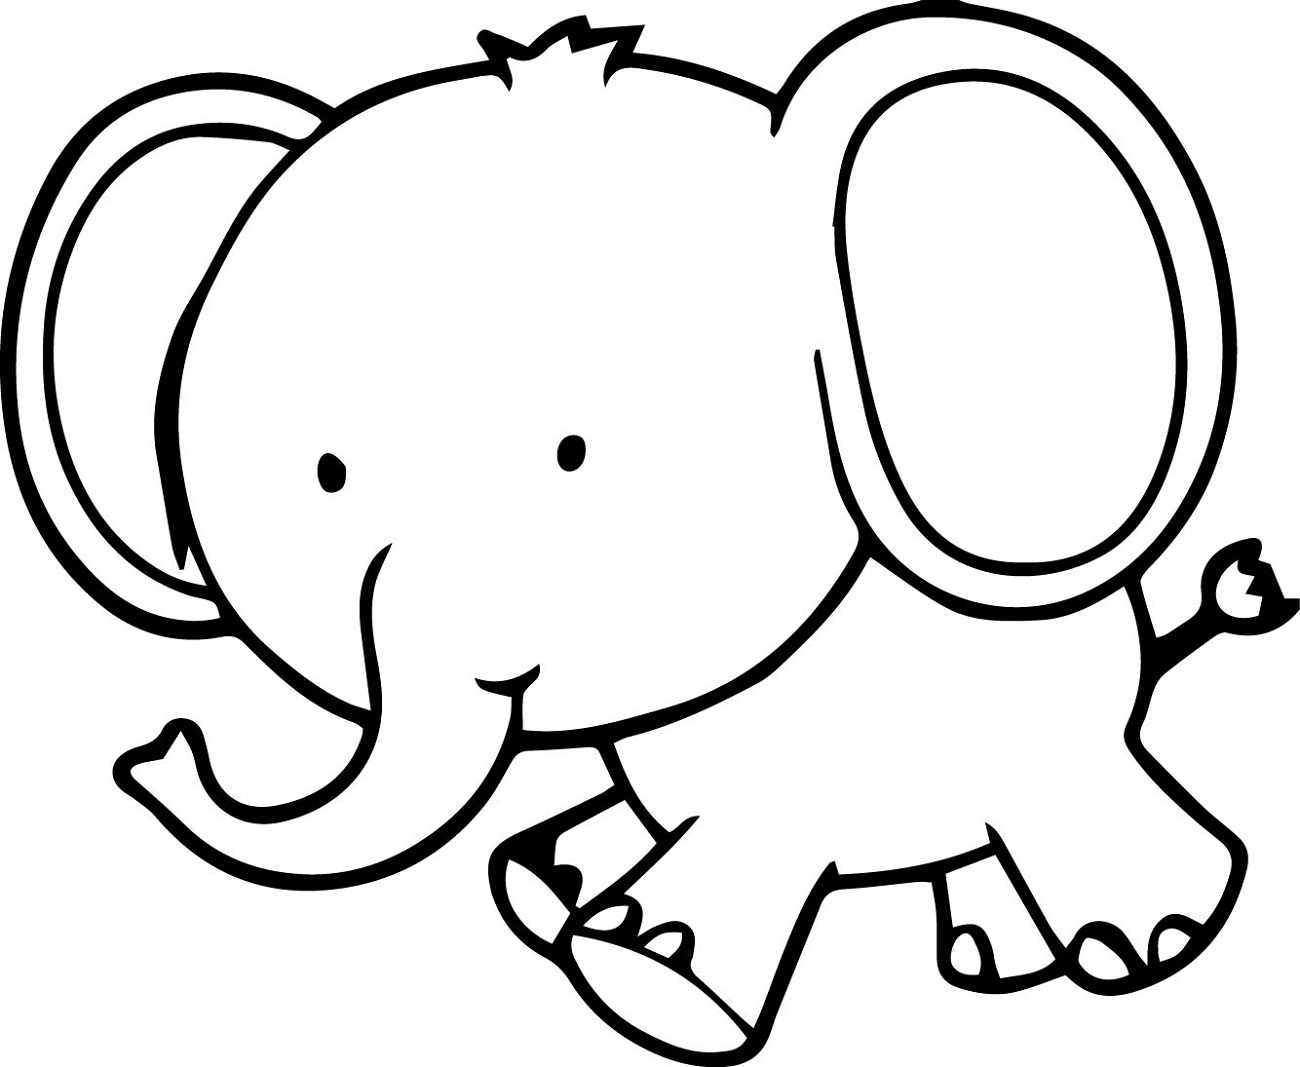 elephant images for colouring activity shelter elephant colouring for images